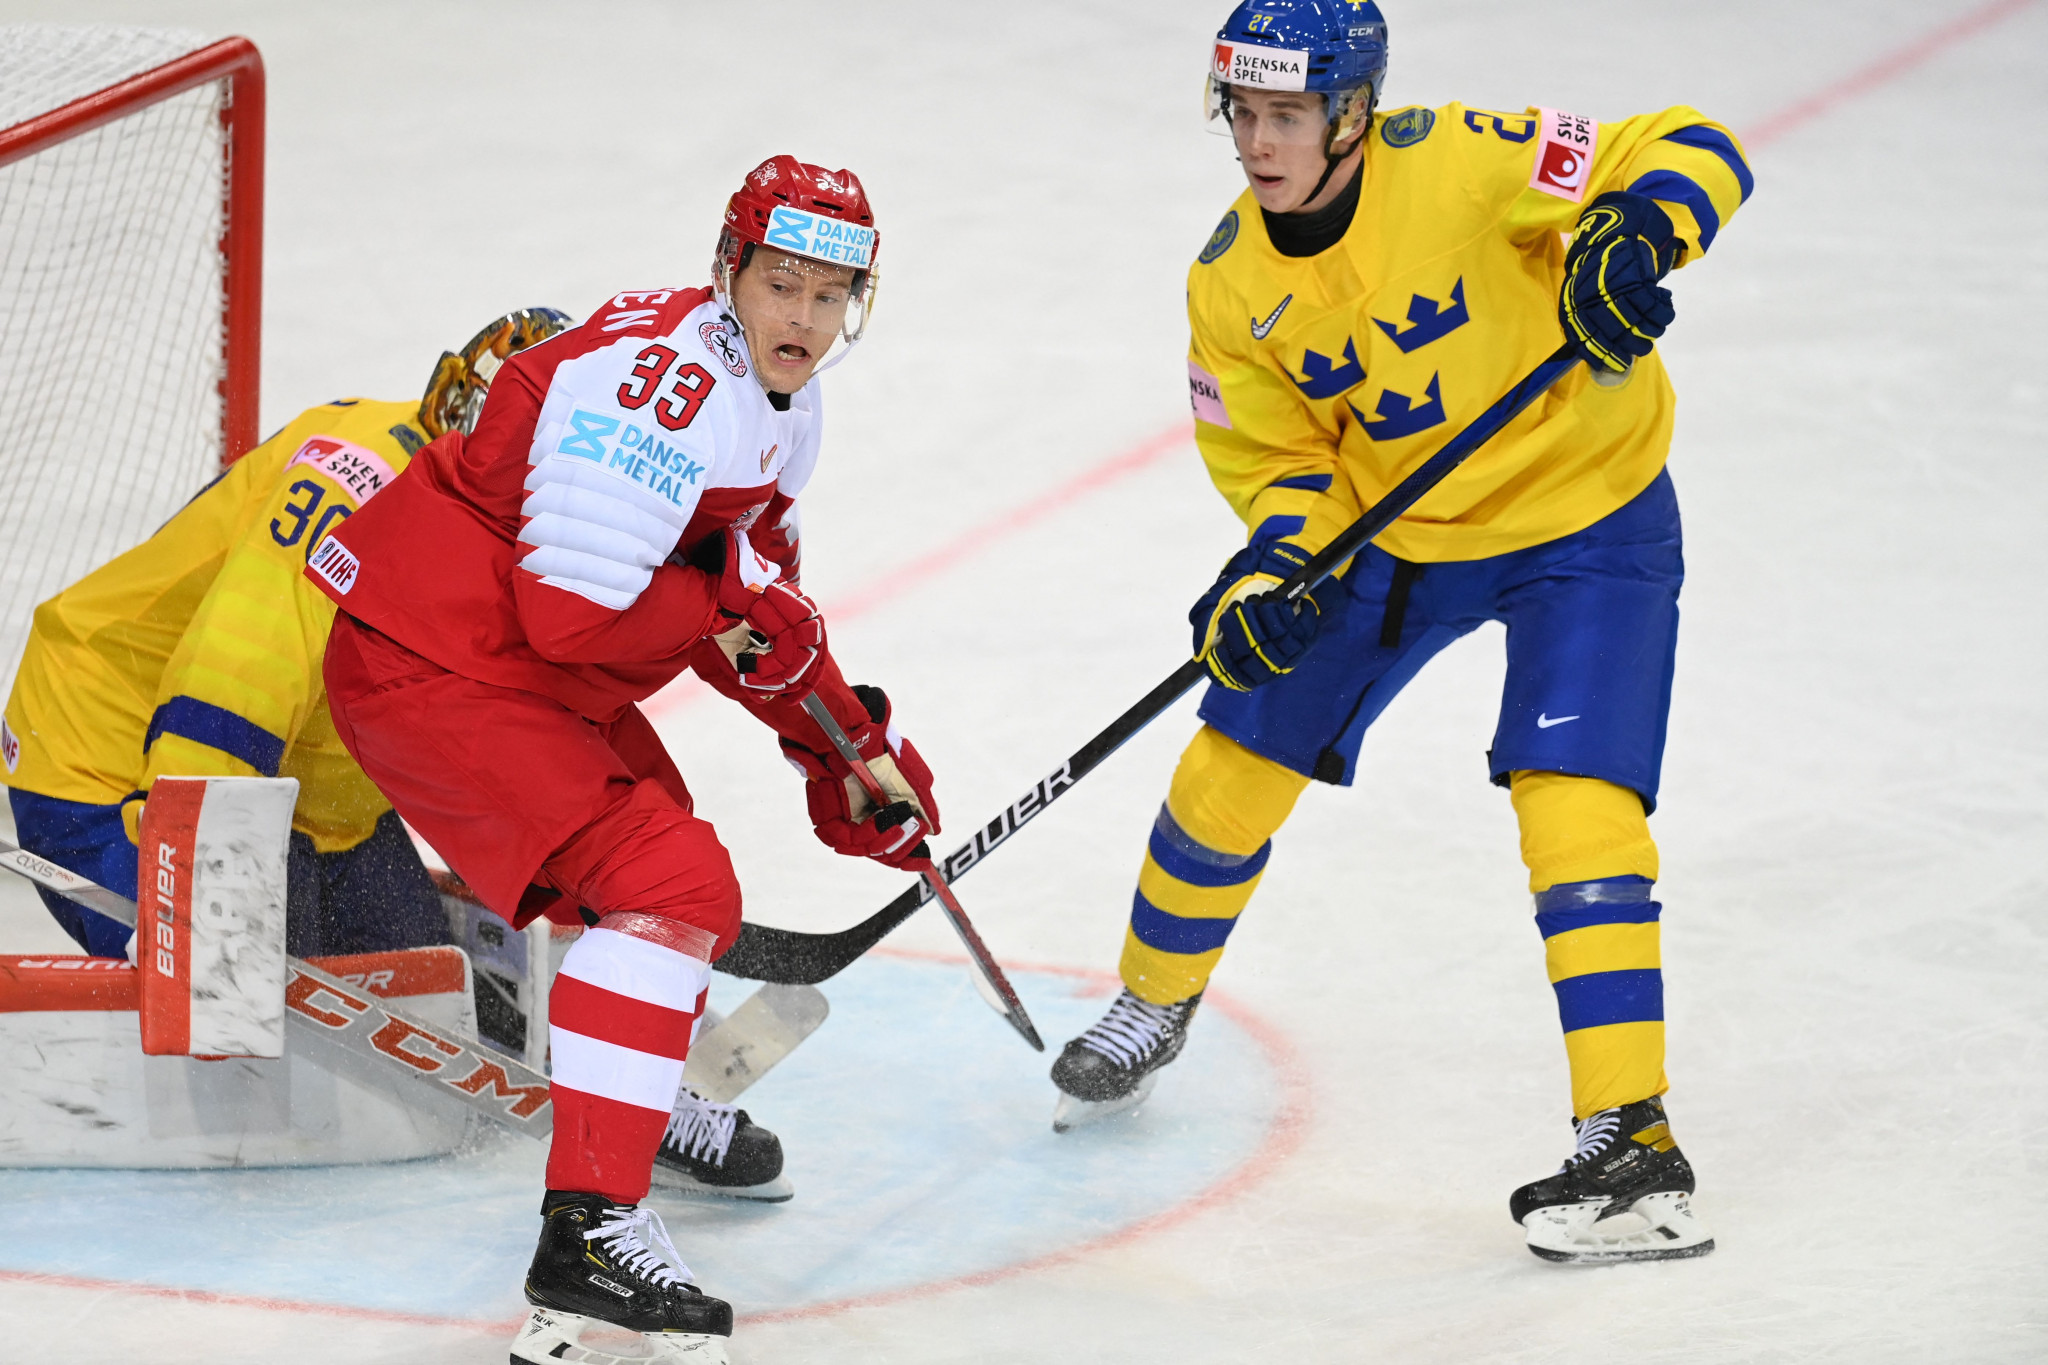 Stockholm and Herning to stage 2025 IIHF World Championship matches